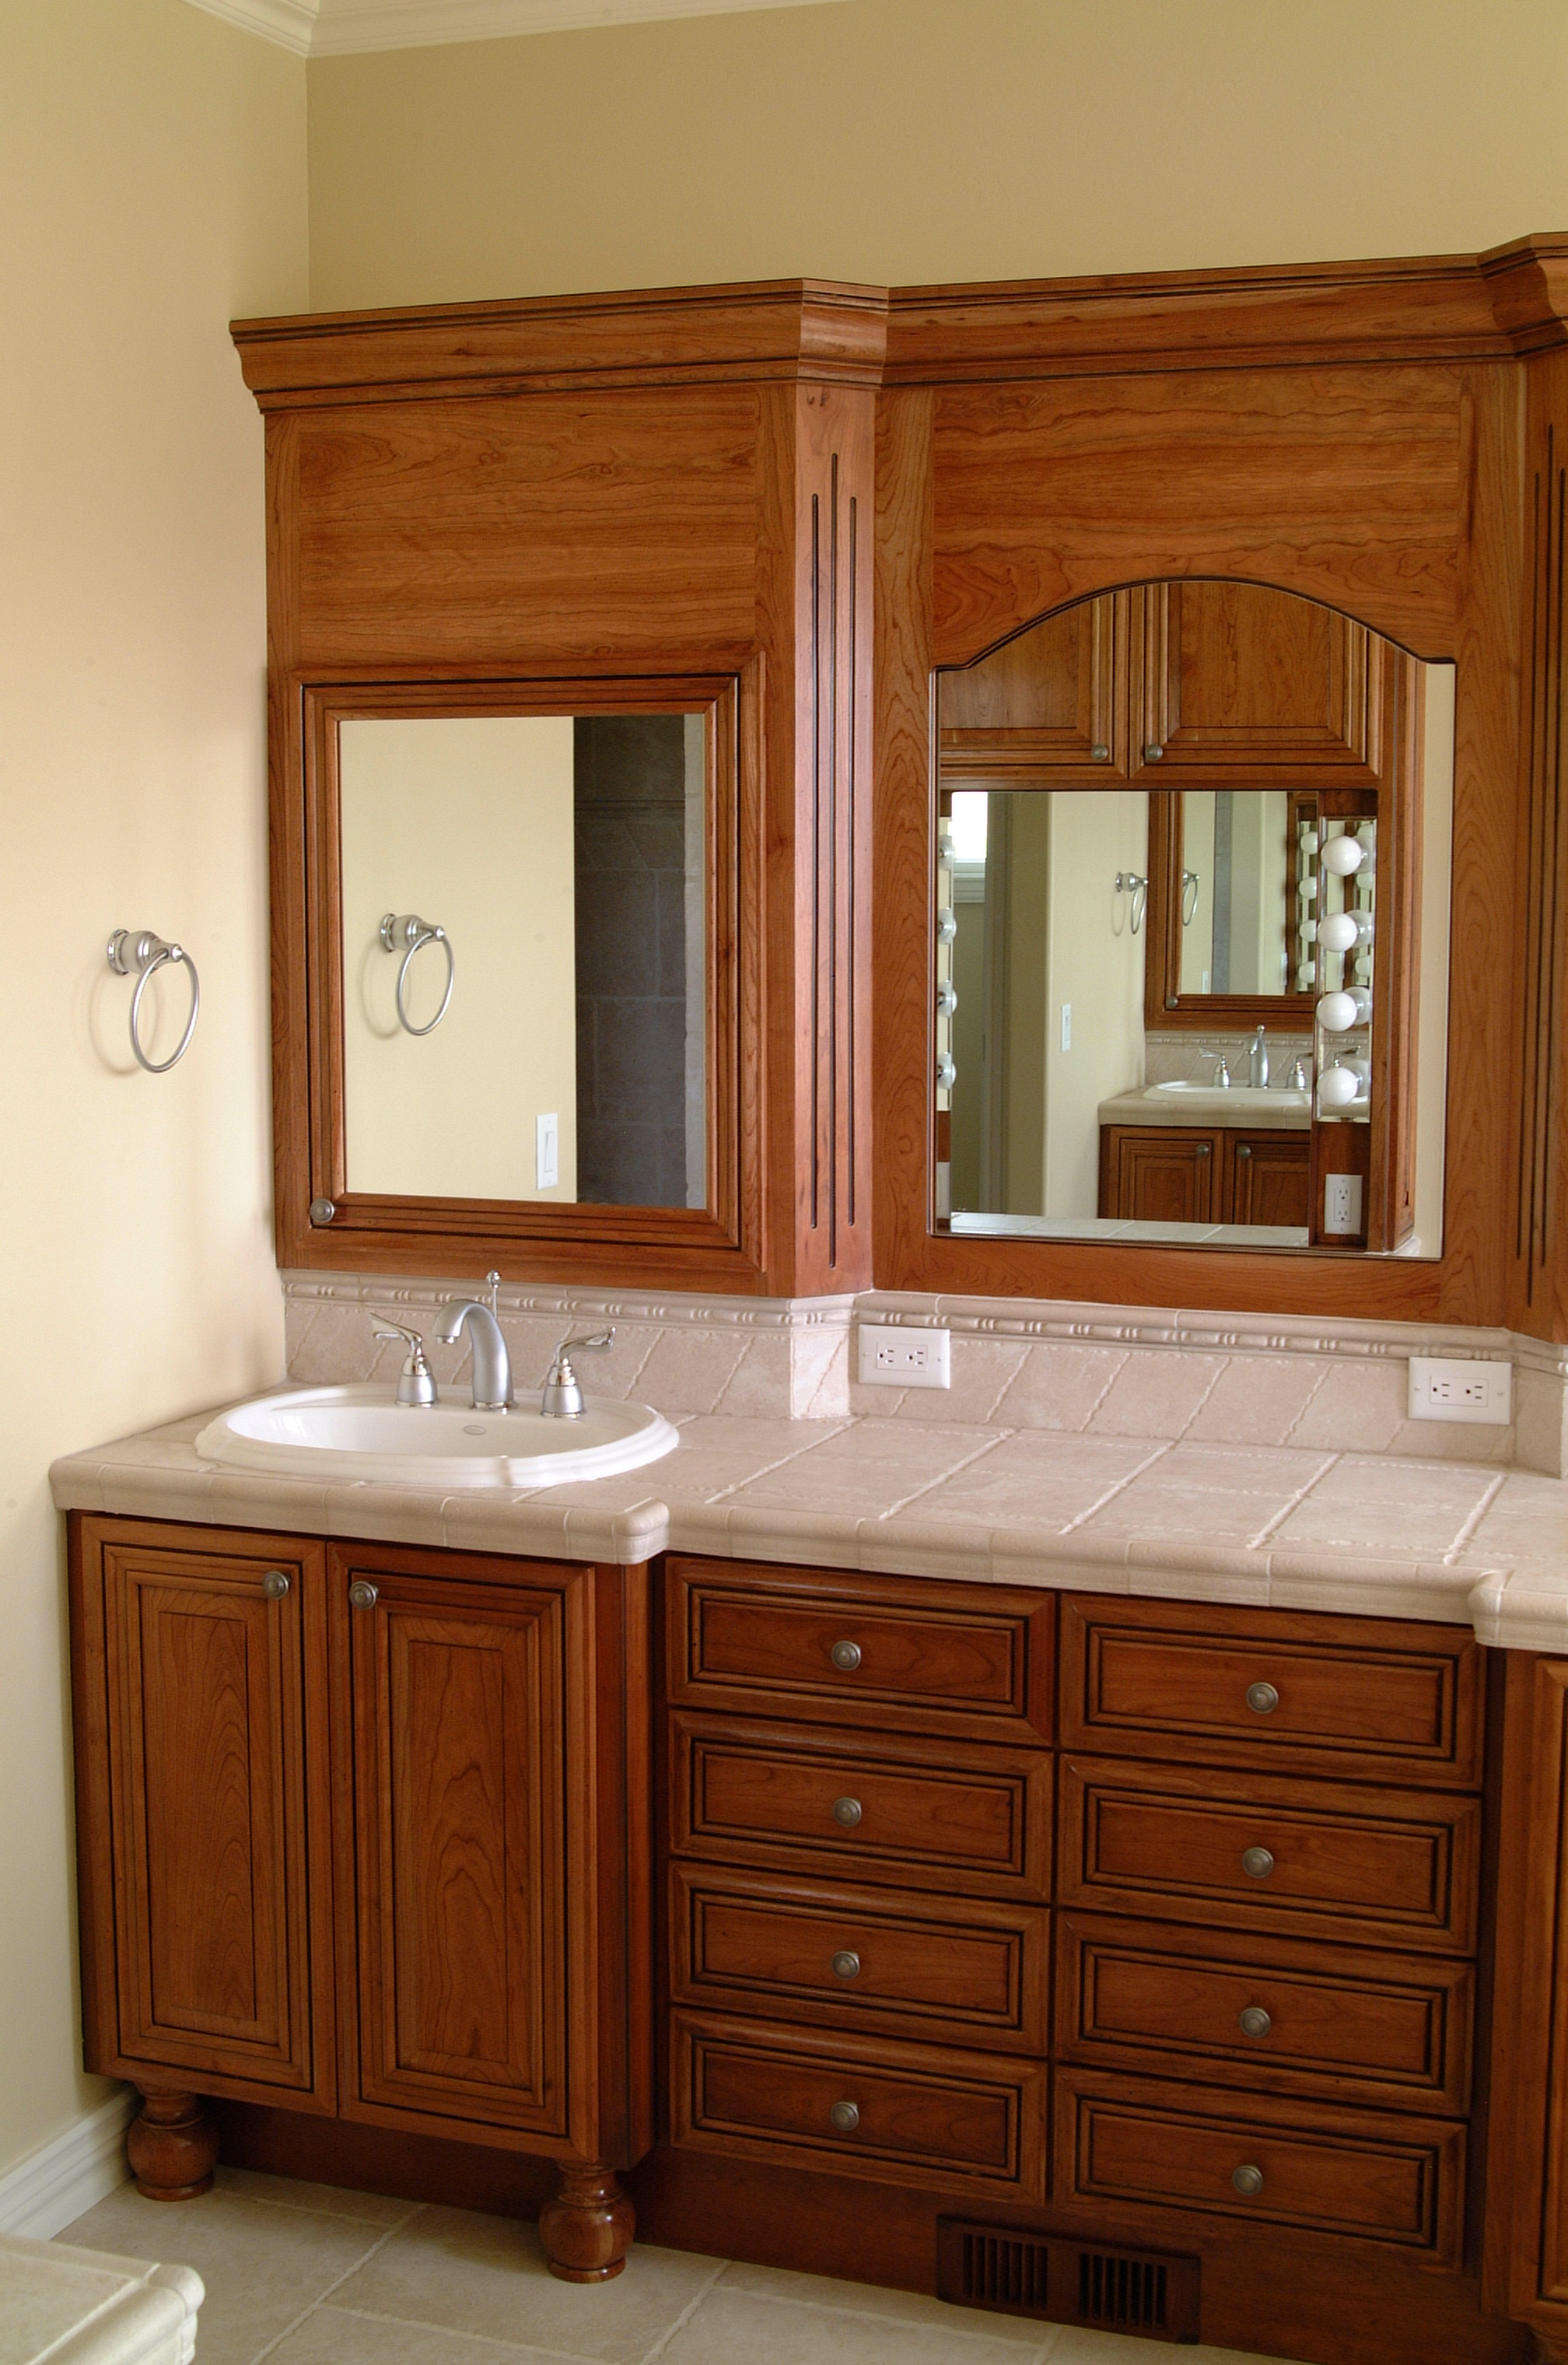 Beau Vanities. Skidmore Can Build Your Custom ...